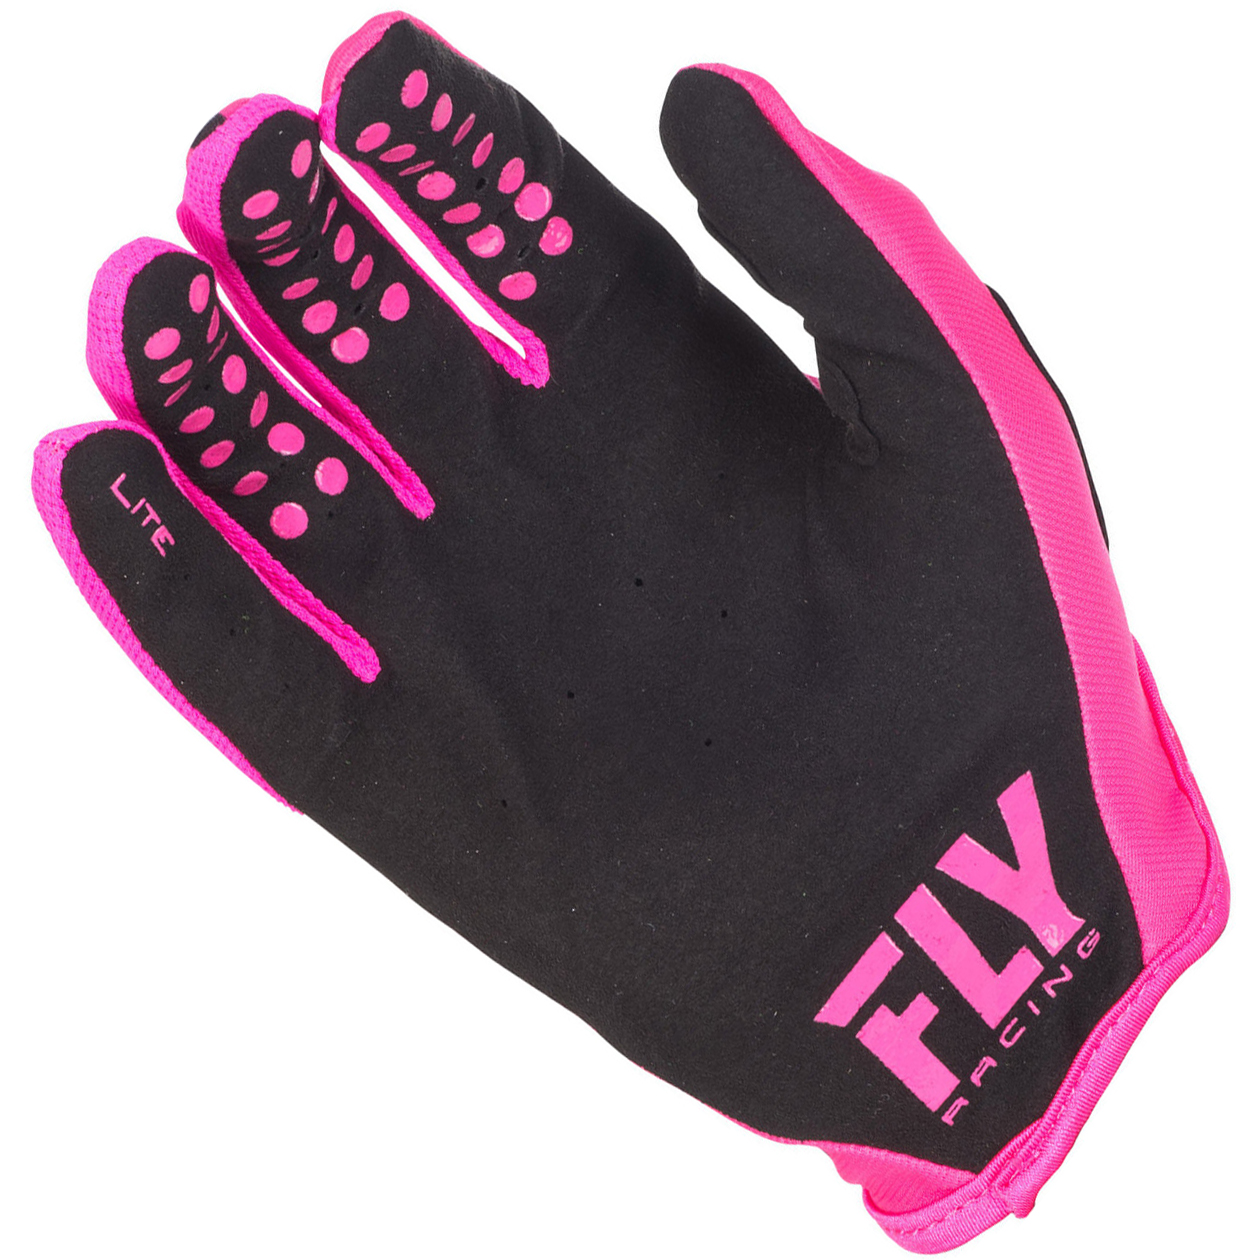 Fly-Racing-2018-Lite-Youth-Motocross-Gloves-Junior-Off-Road-MX-Vented-Race-Glove thumbnail 20